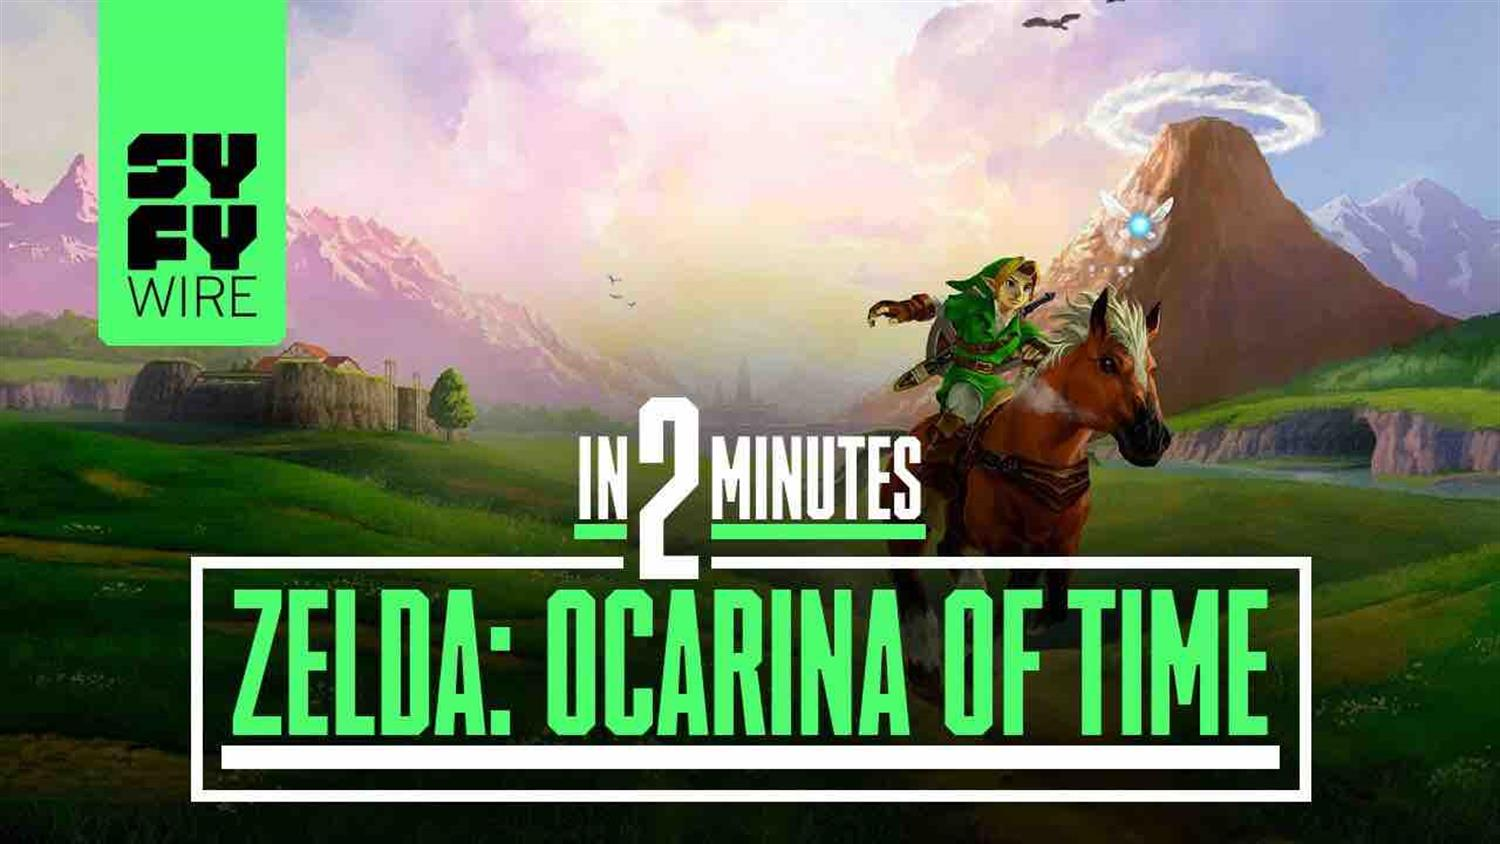 The Legend of Zelda: Ocarina of Time in 2 Minutes